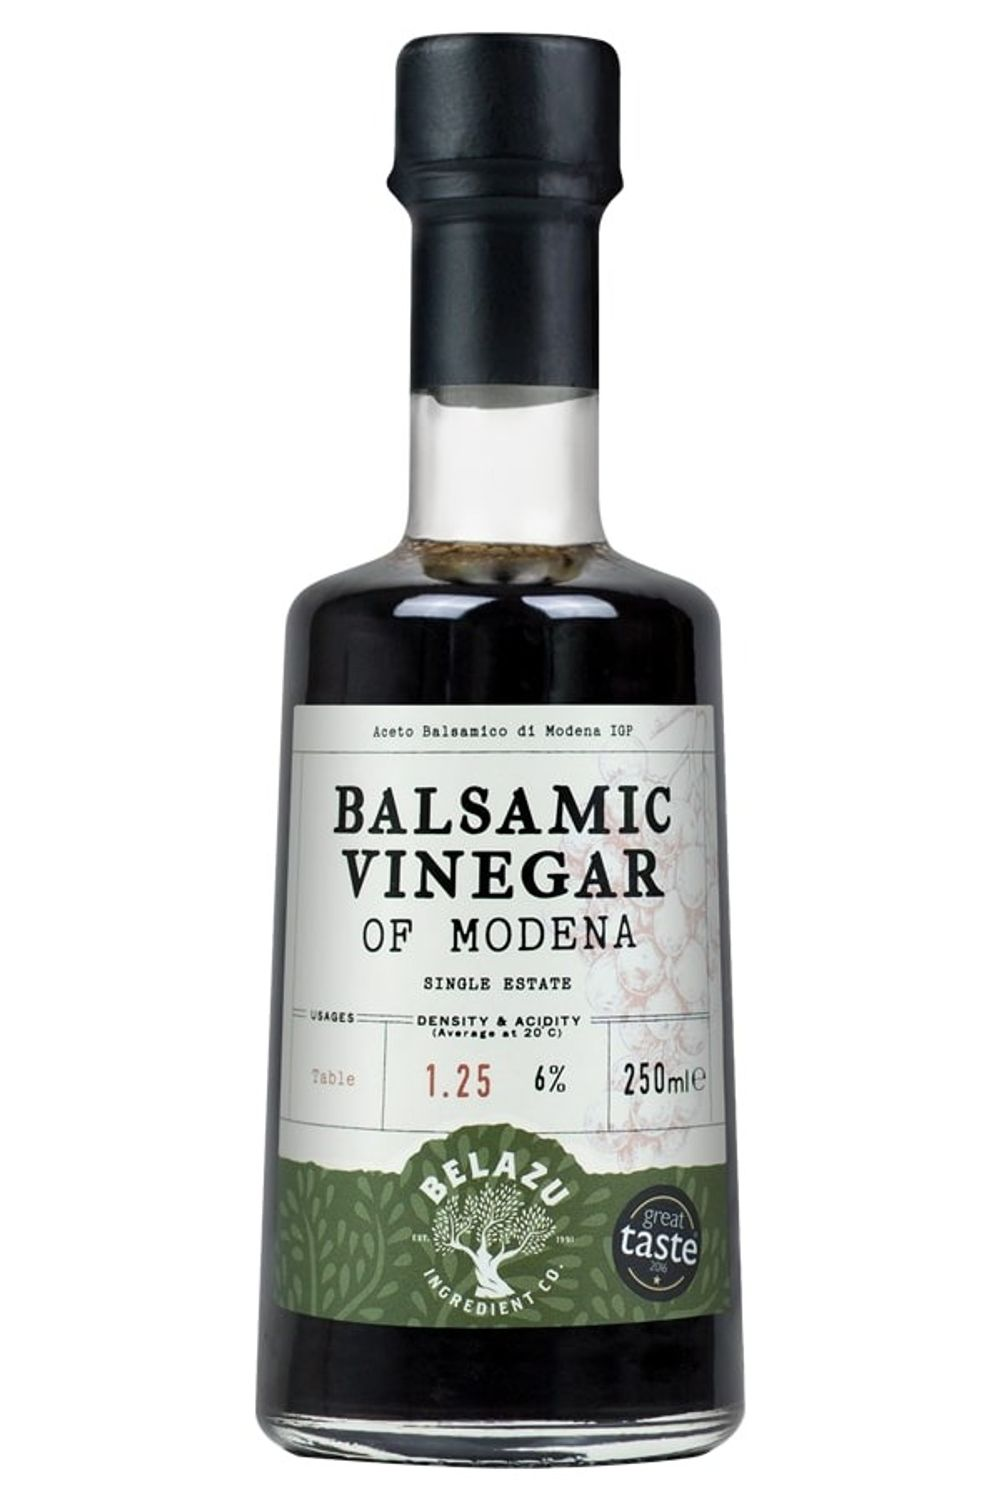 Balsamic Vinegar - Density 1.25